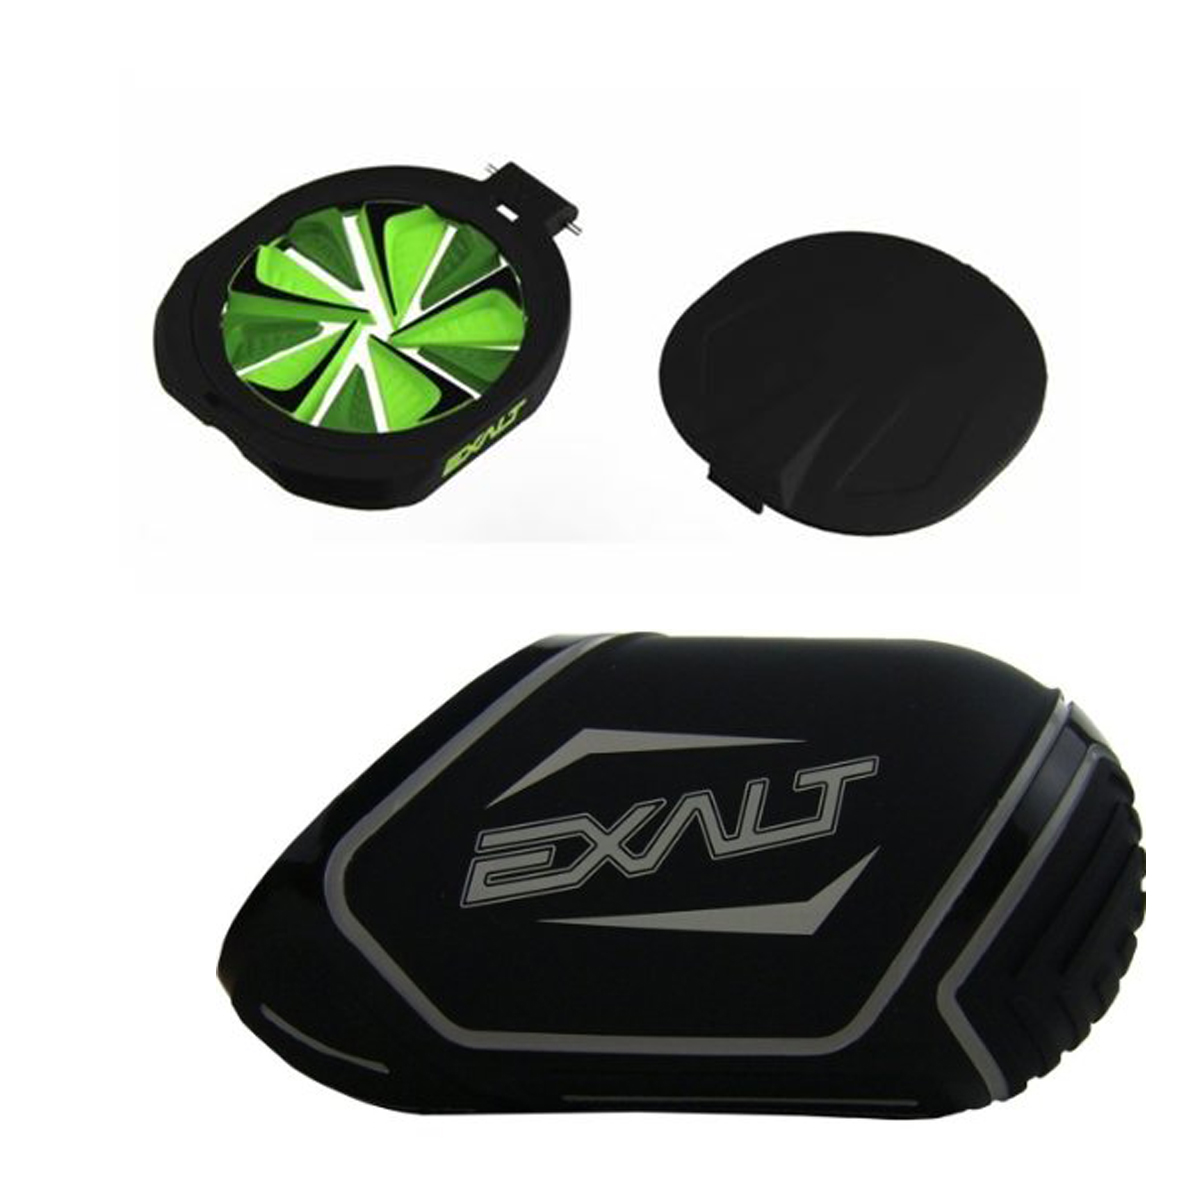 Exalt Paintball Spire FastFeed Loader FeedGate - Lime Green + Exalt Tank Cover